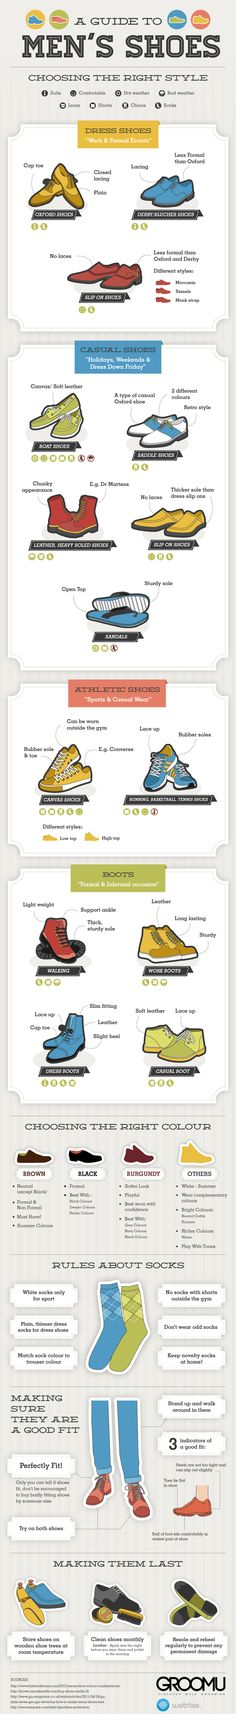 Shoes infographic